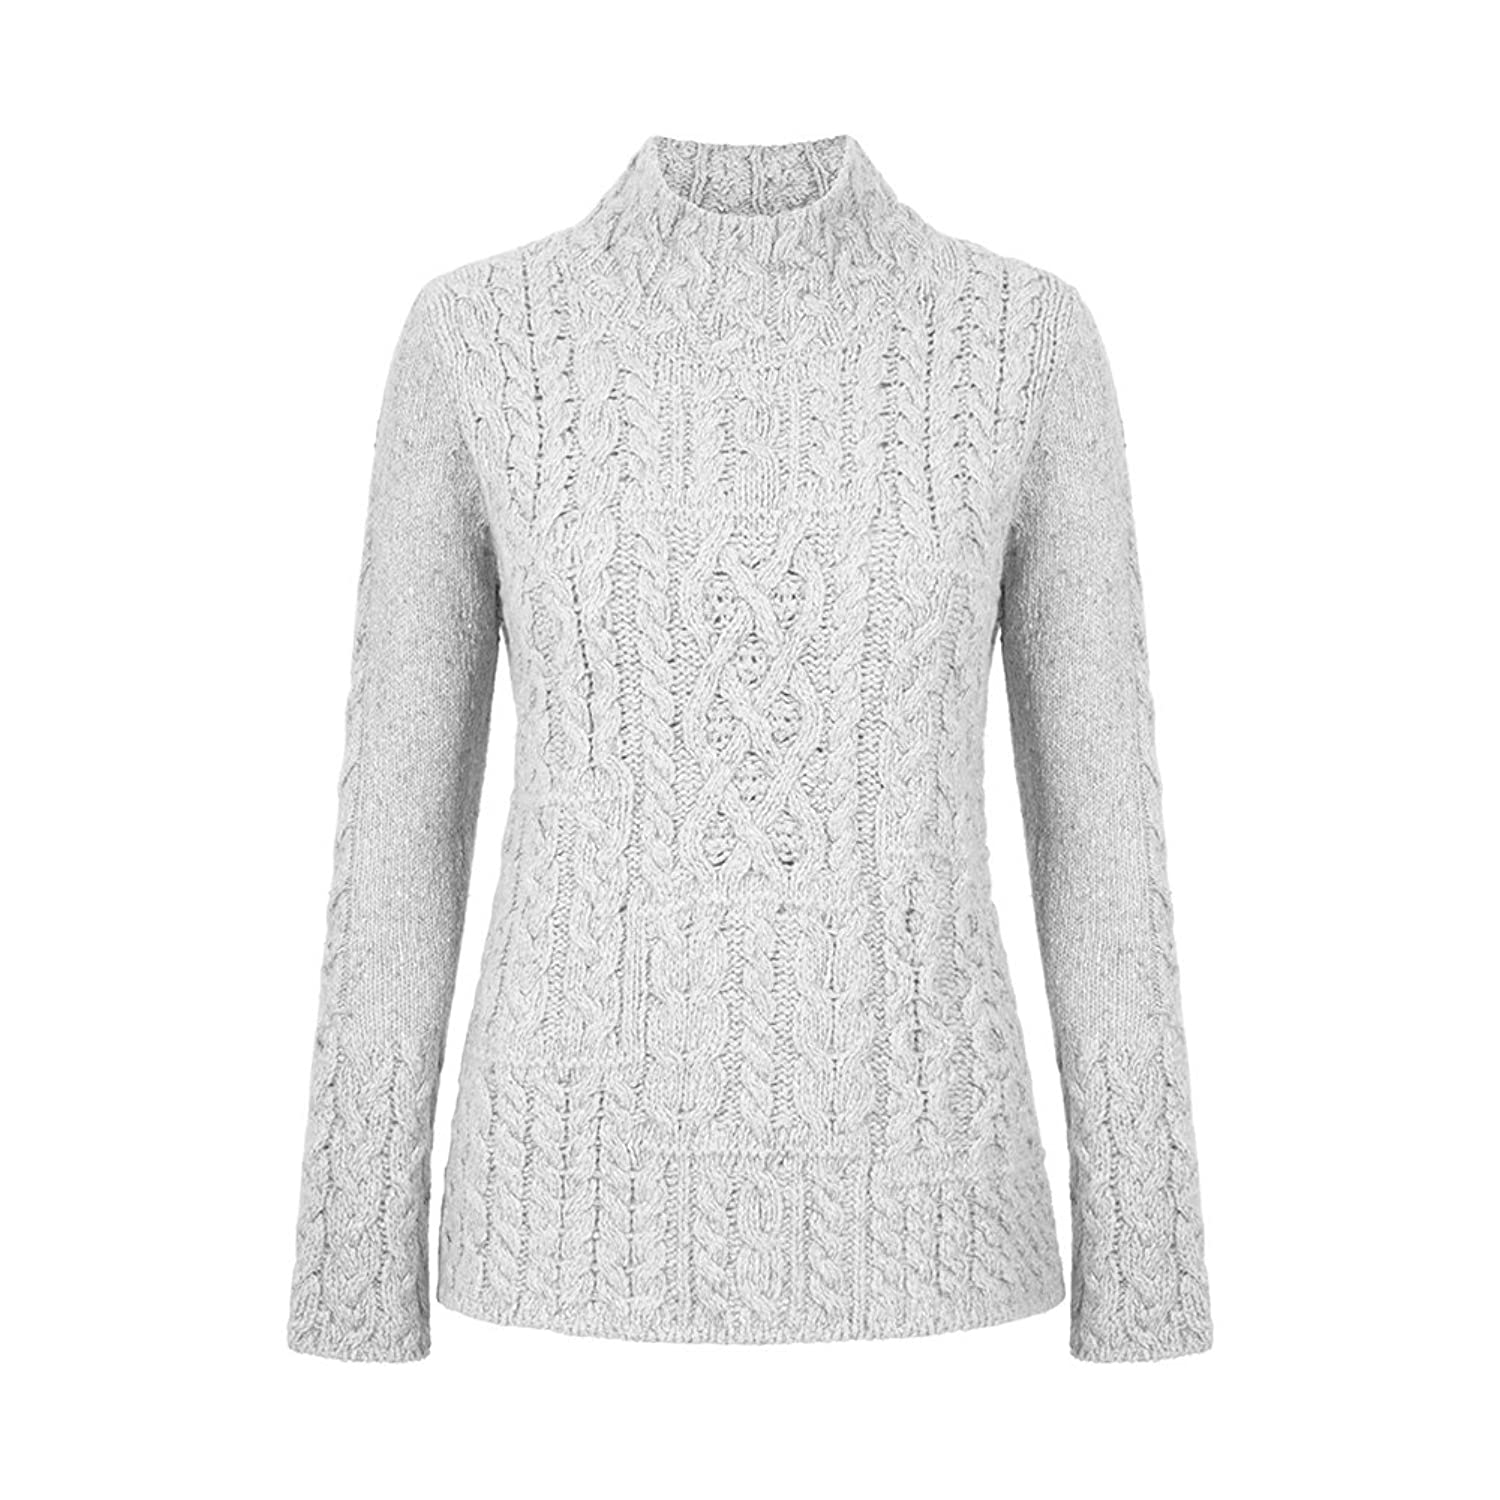 Ladies Cut Patchwork Wool Sweater, Imported from Ireland, Natural